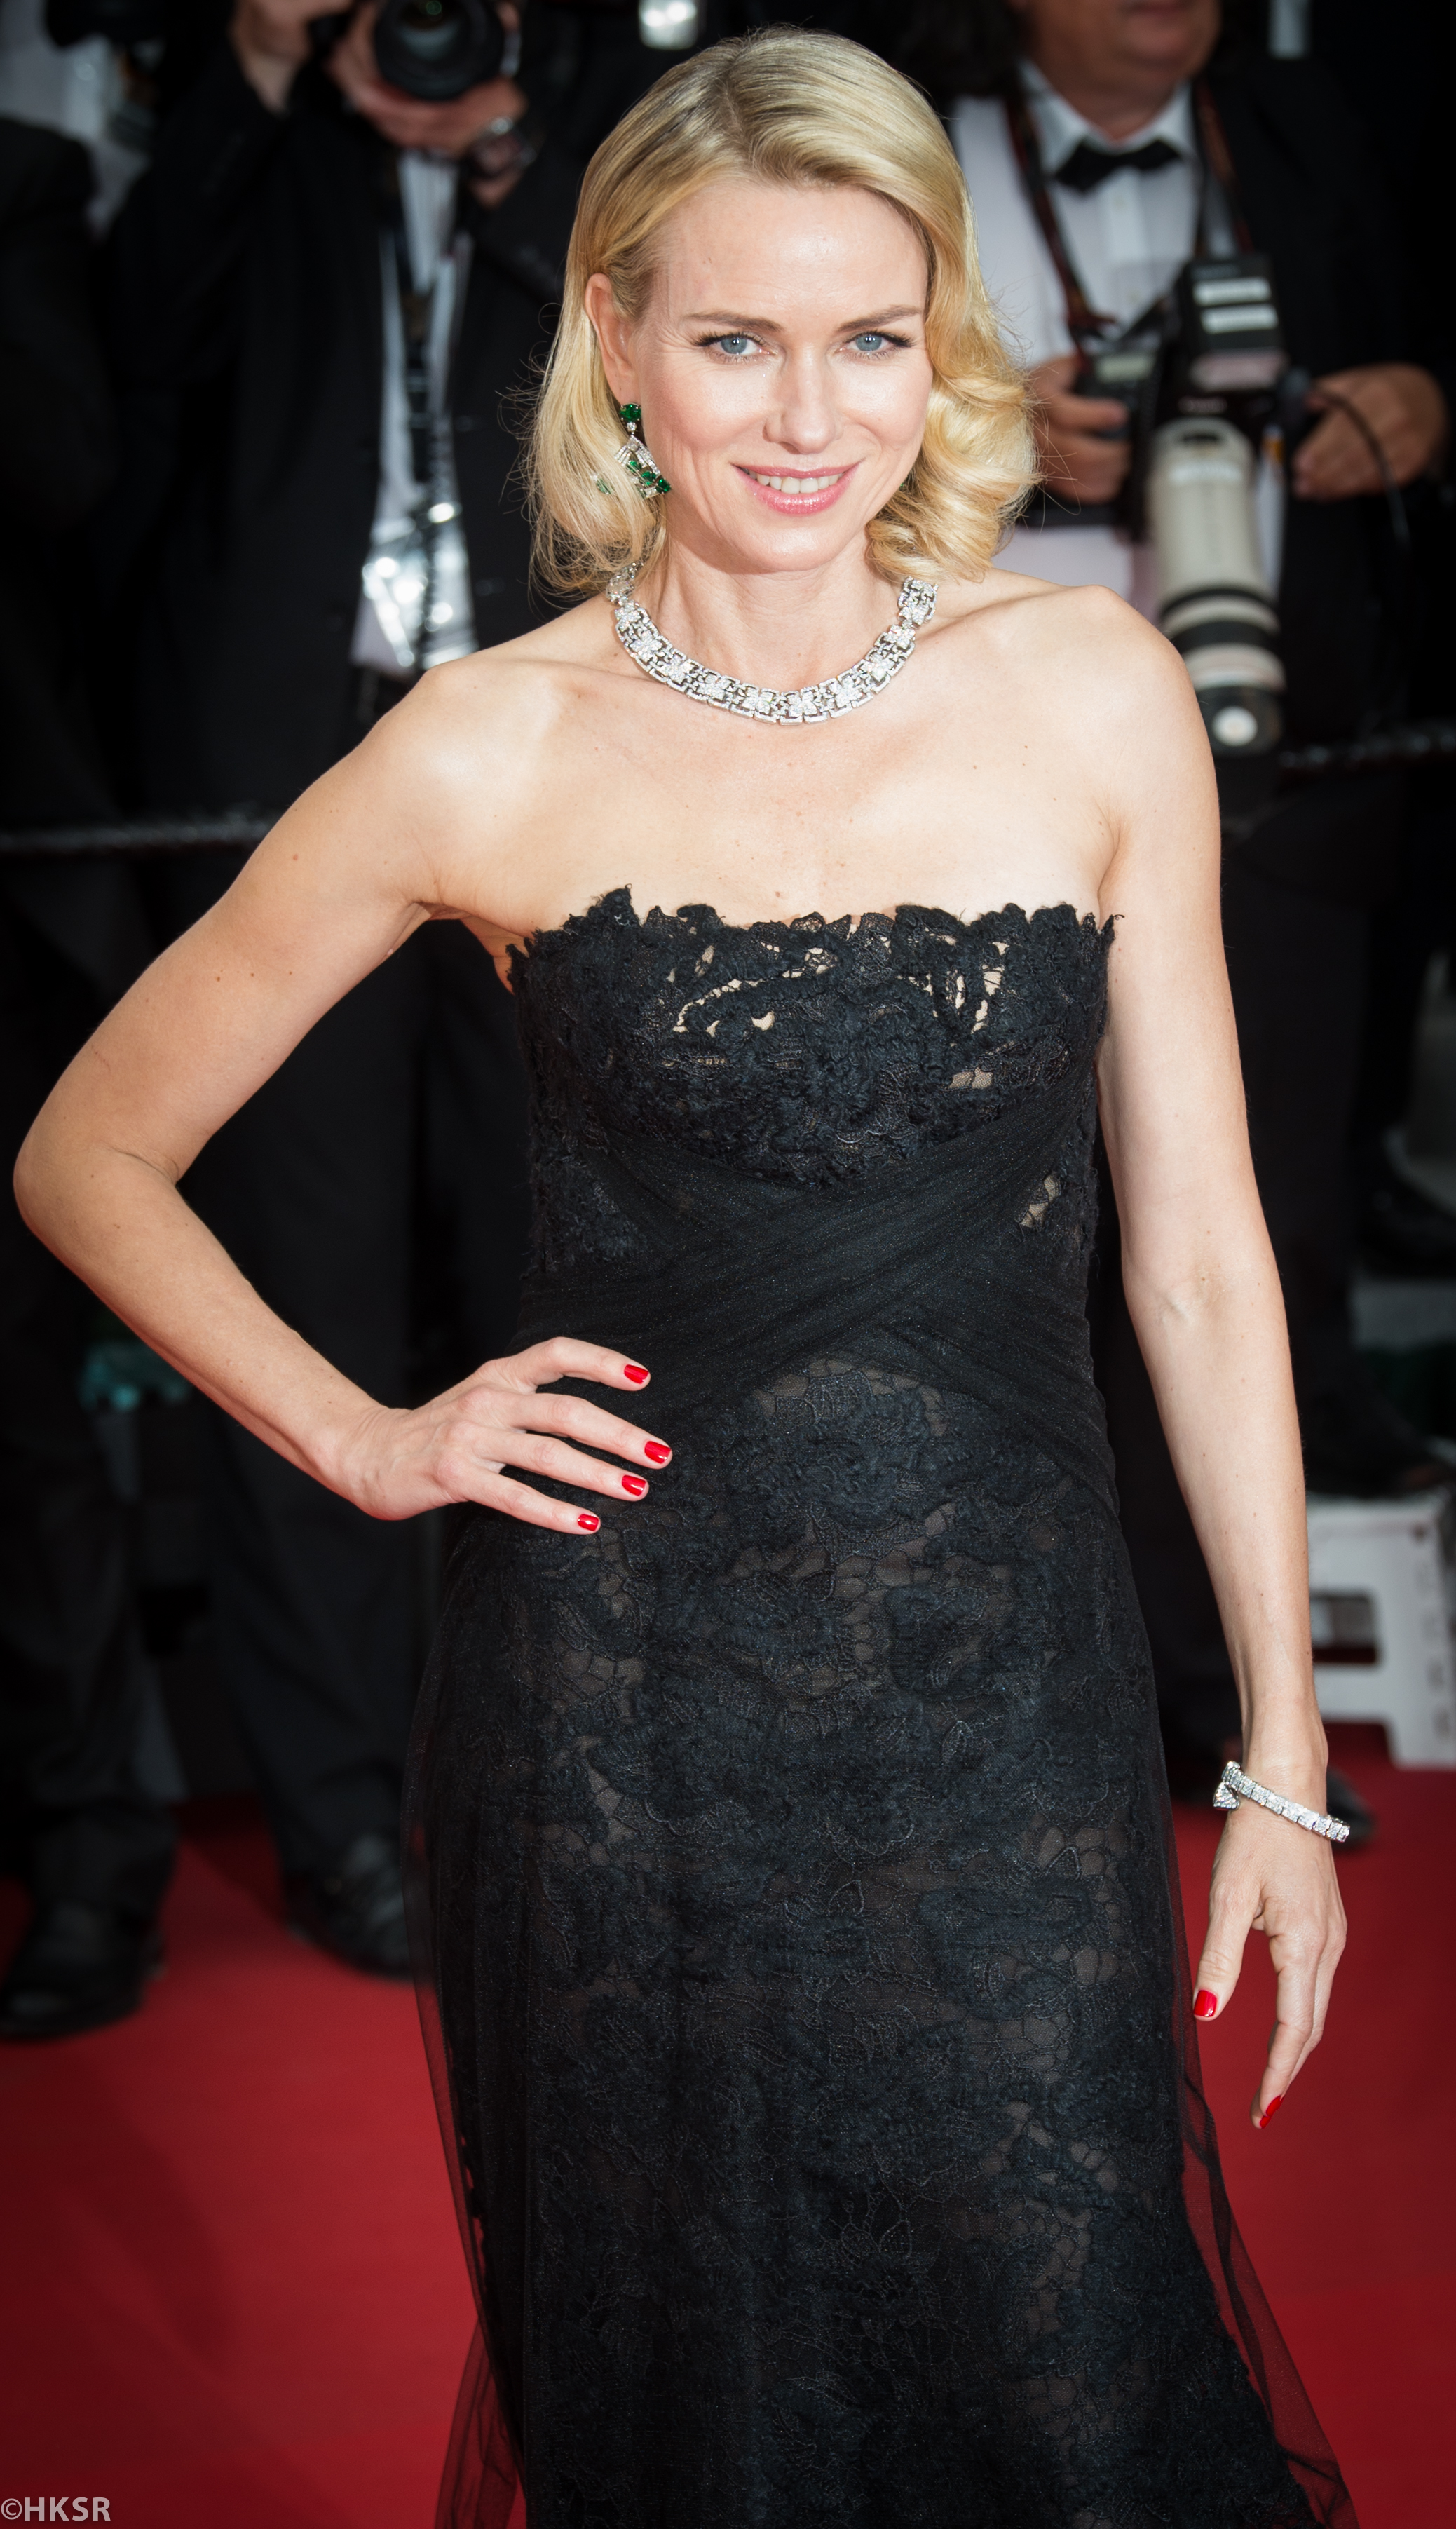 Naomi Watts in a Ralph Lauren strapless gown on the red carpet at Cannes 2015